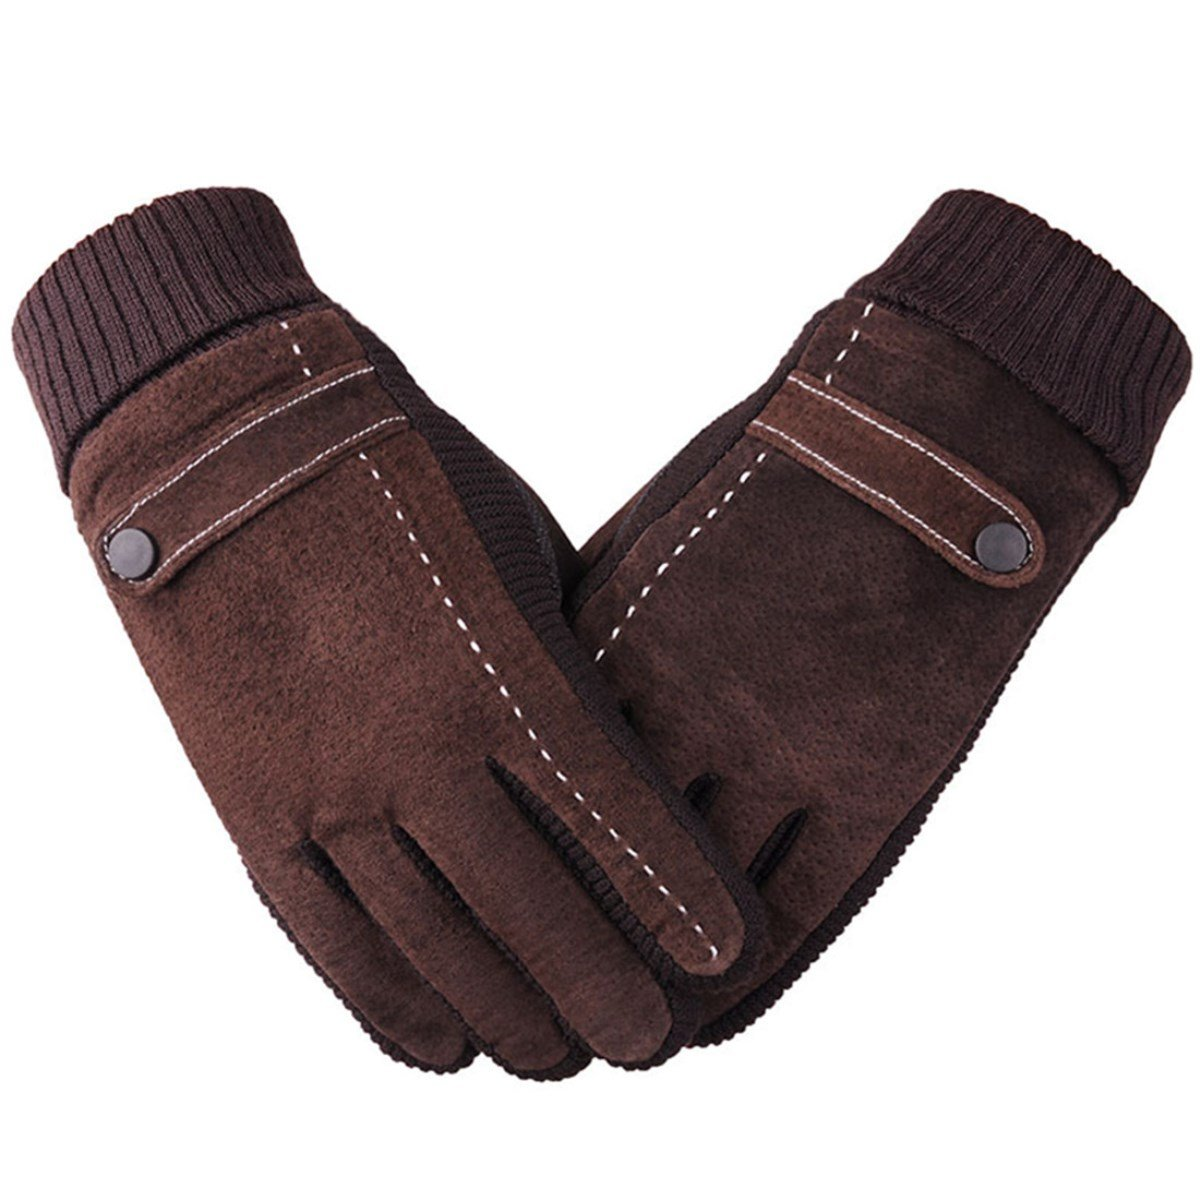 D.King Mens Winter Outdoors Gloves Suede Leather Knit Cuff with Thick Fleece Lining Mittens Brown